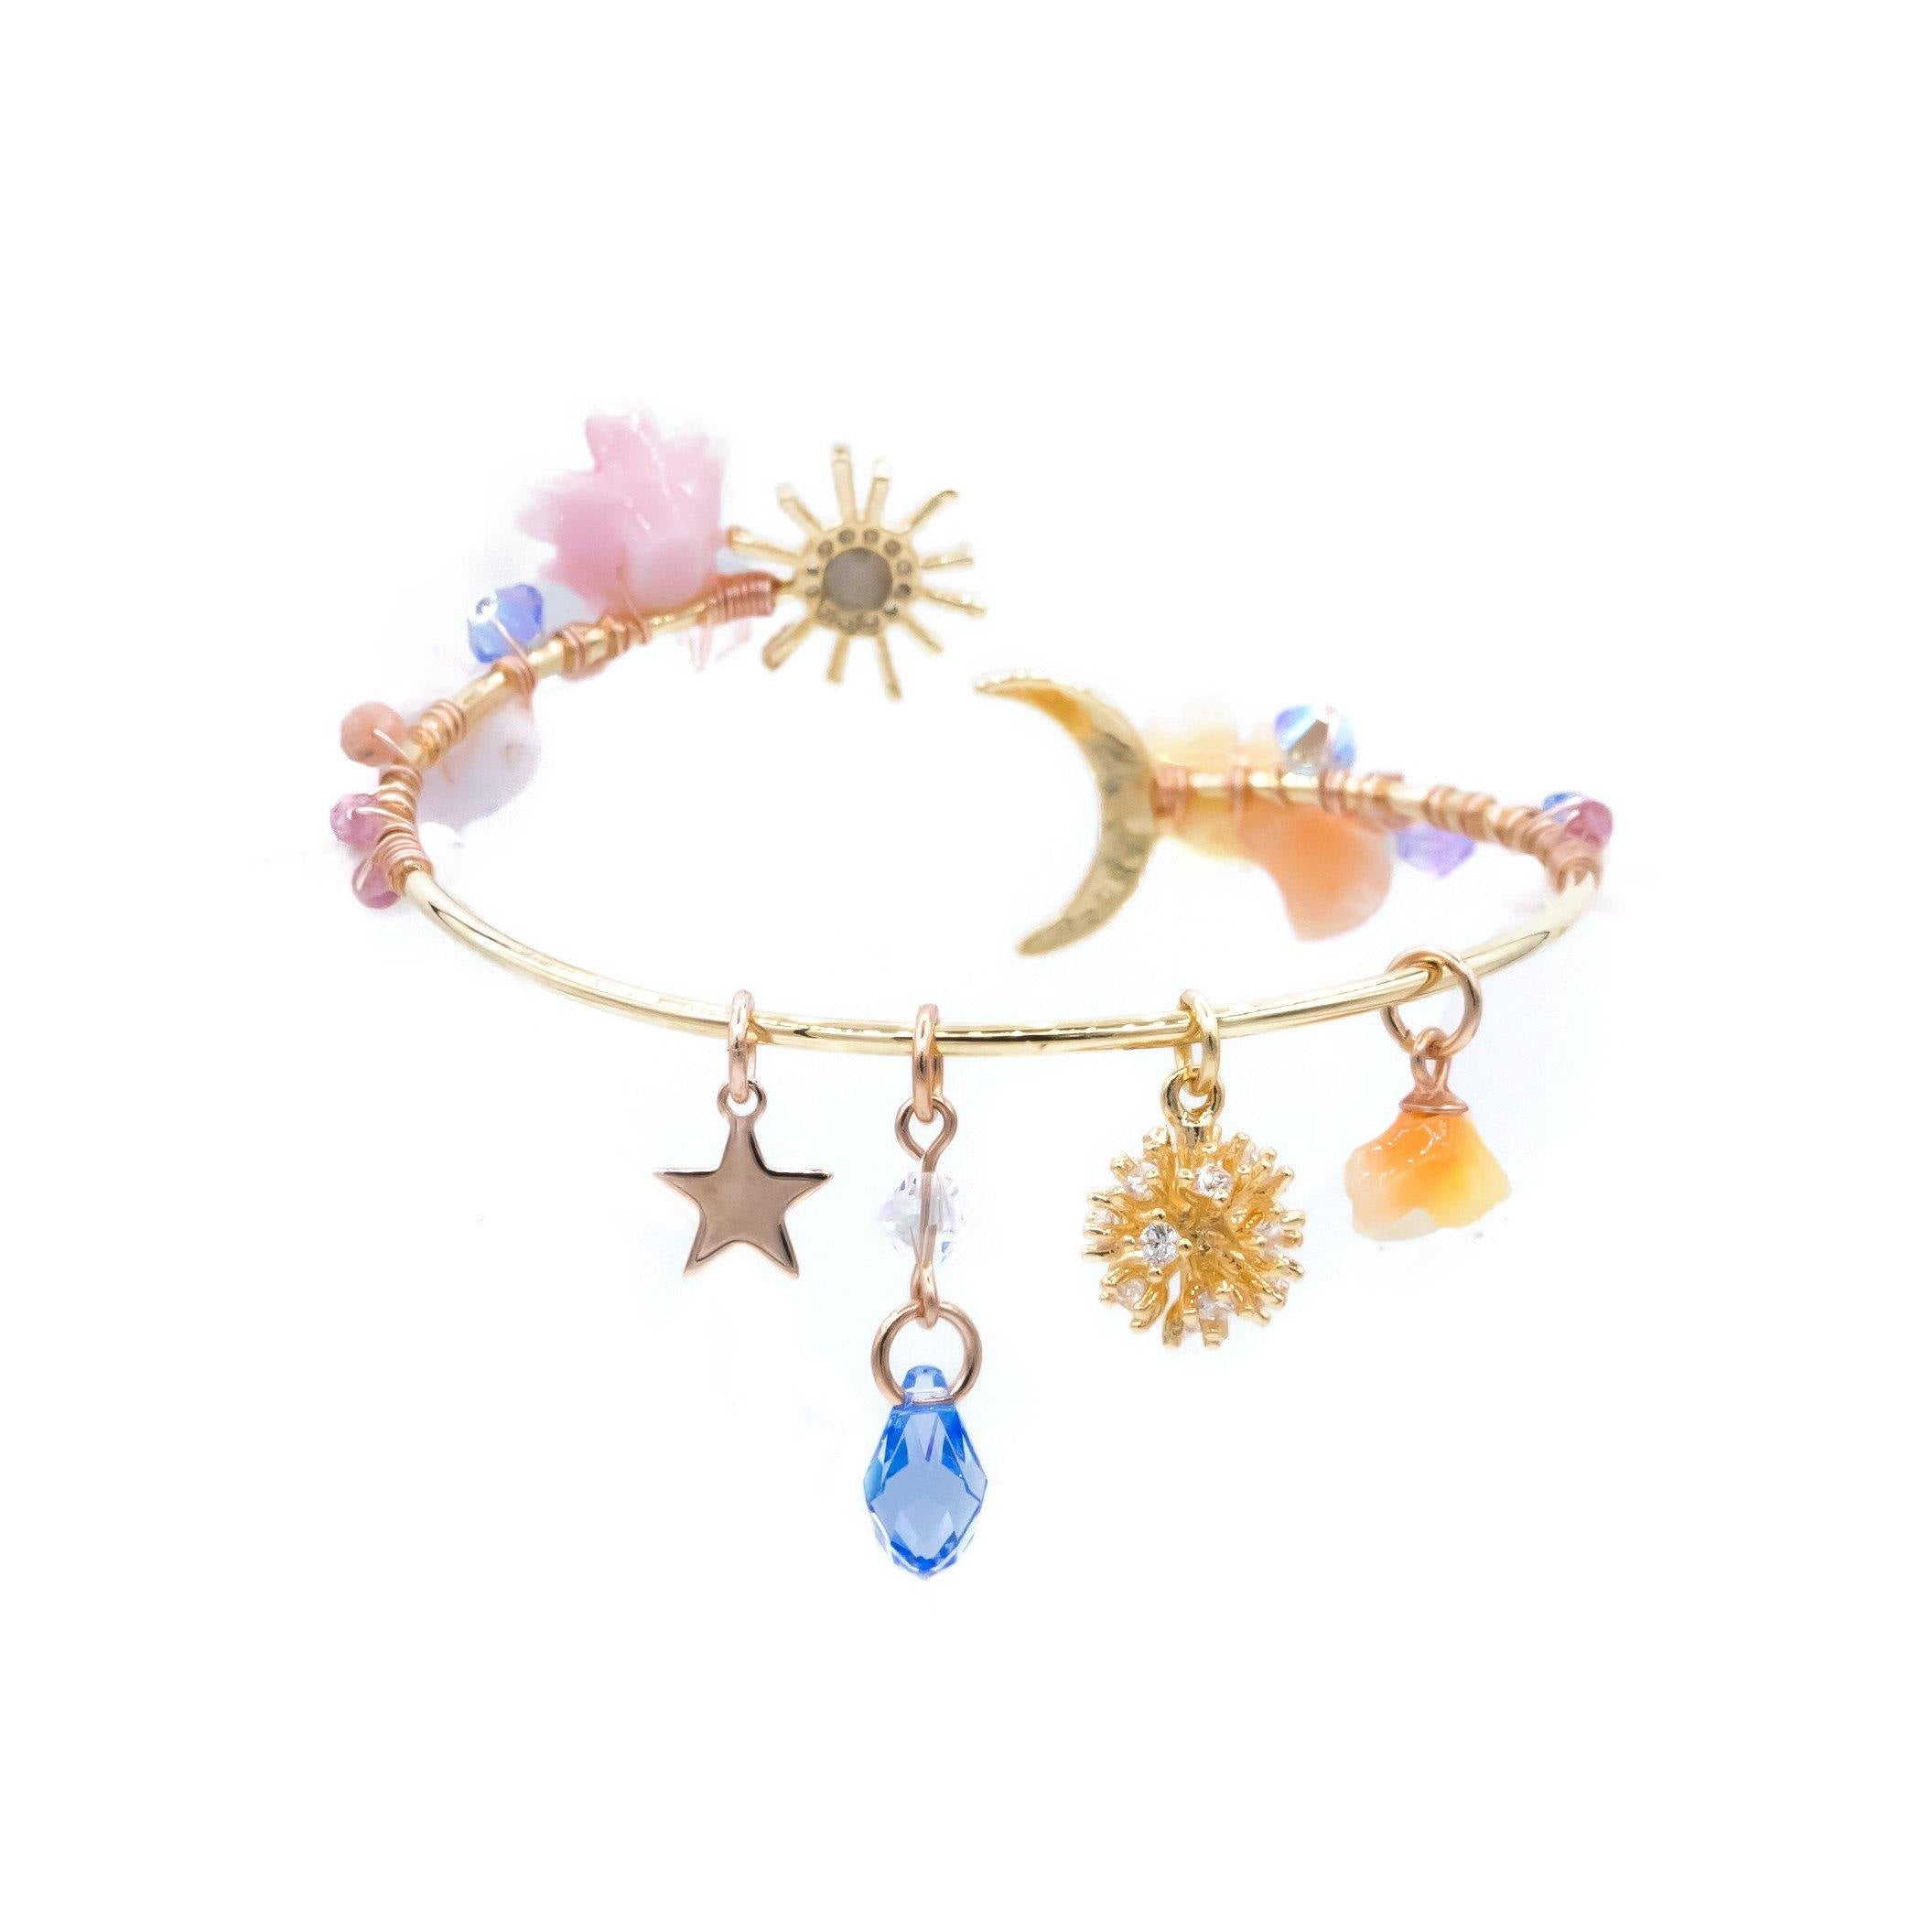 Camellia's Memory Eustoma & Coral 14K Gold-plated Moon Bangle